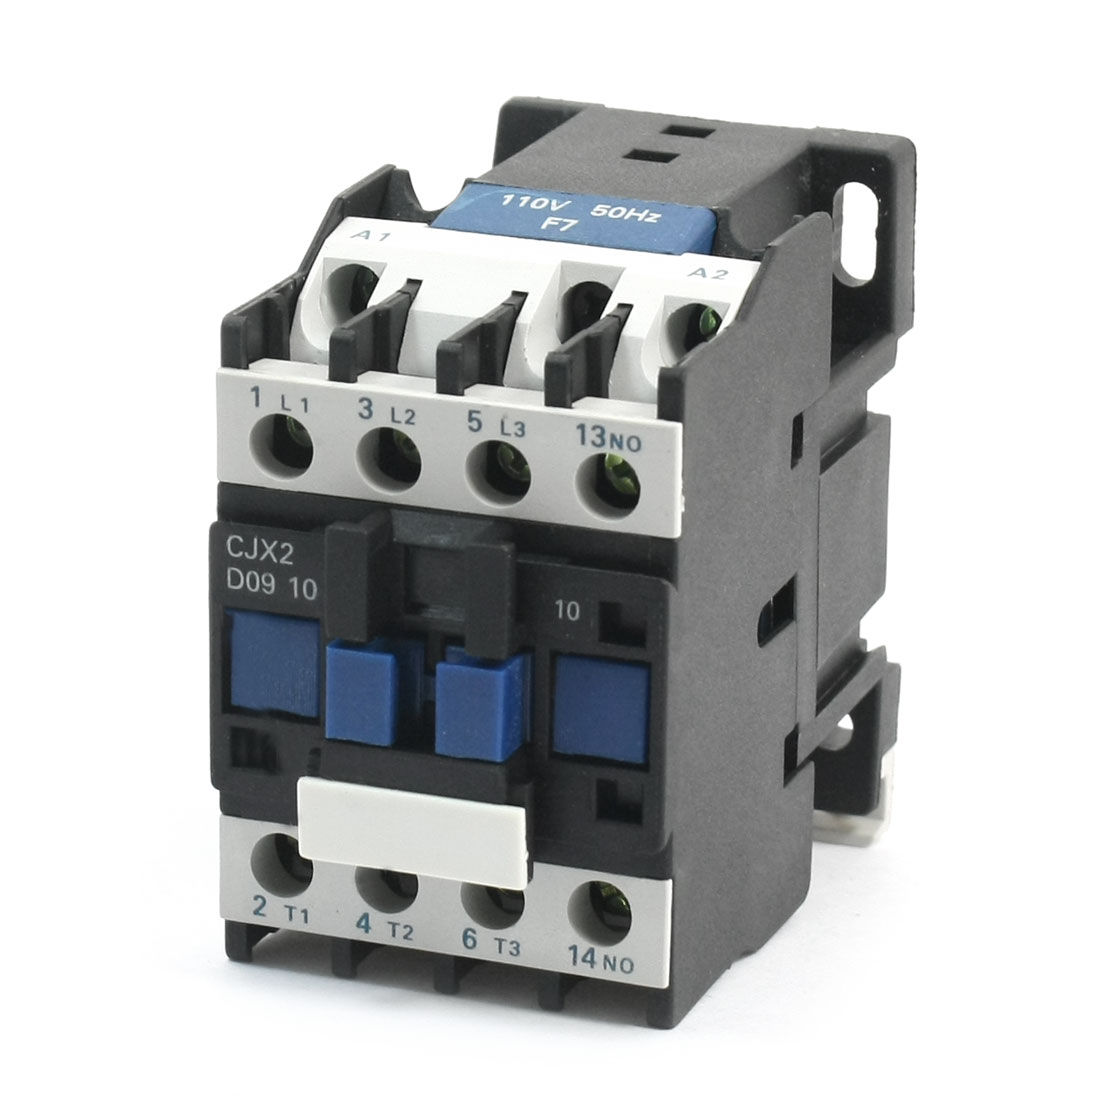 CJX2-0910 AC110V Coil 35mm DIN Rail Mounting 11 Screw Terminals 3-Pole 3 Phases Electric Power Contactor